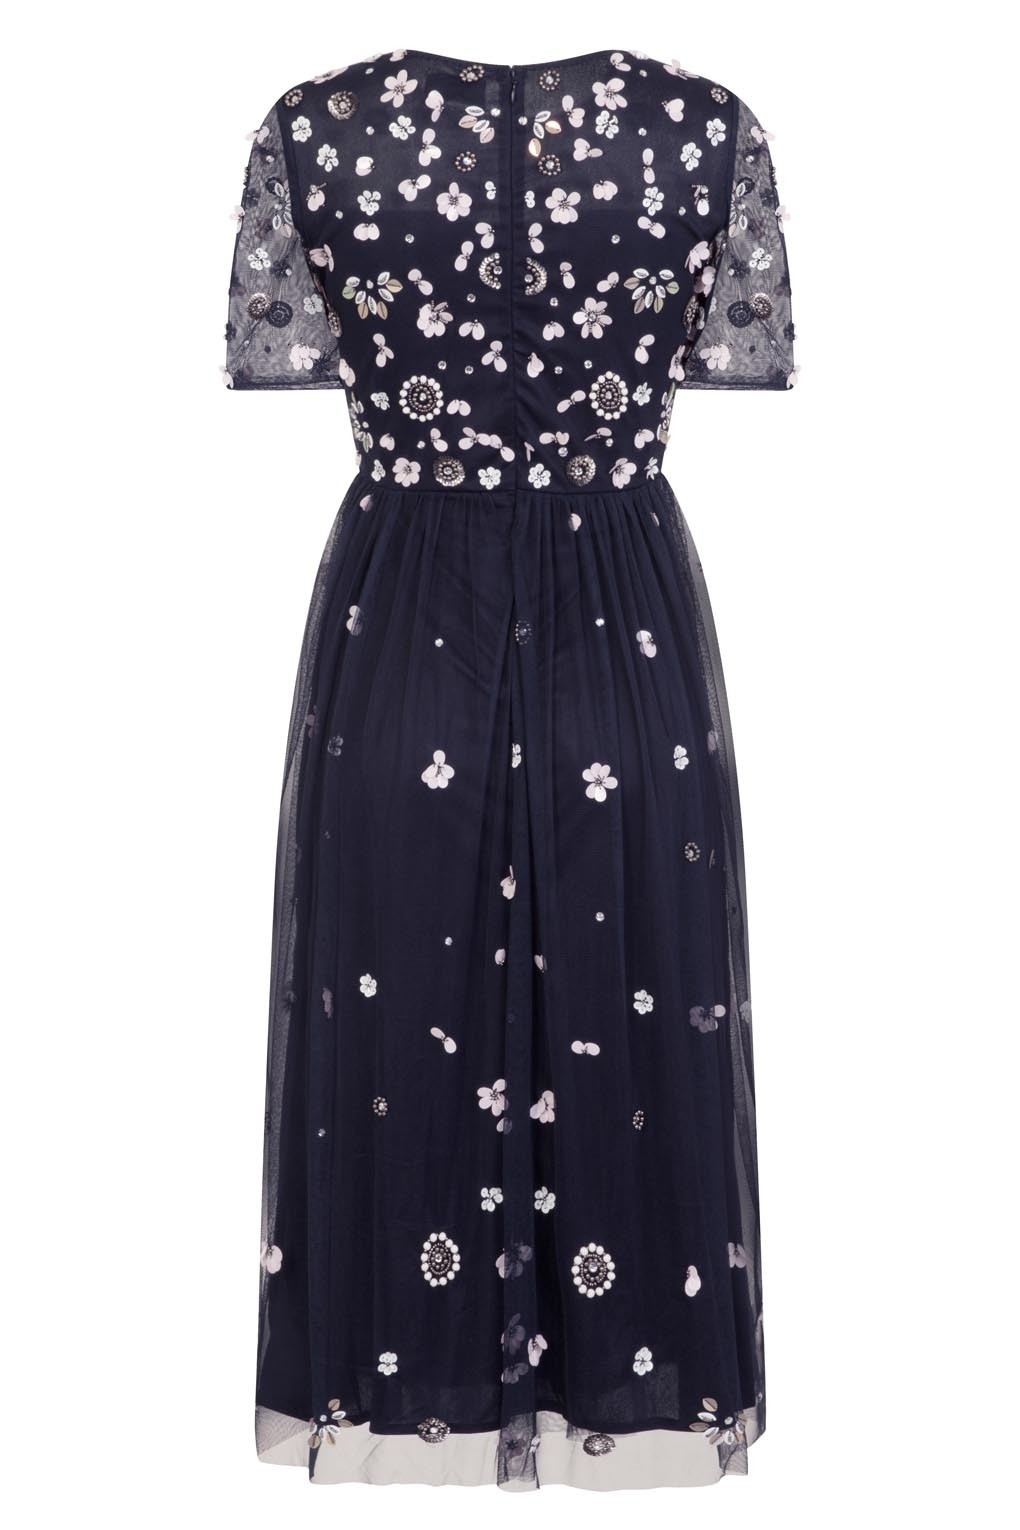 lace beads baby navy dress lace beads dress. Black Bedroom Furniture Sets. Home Design Ideas